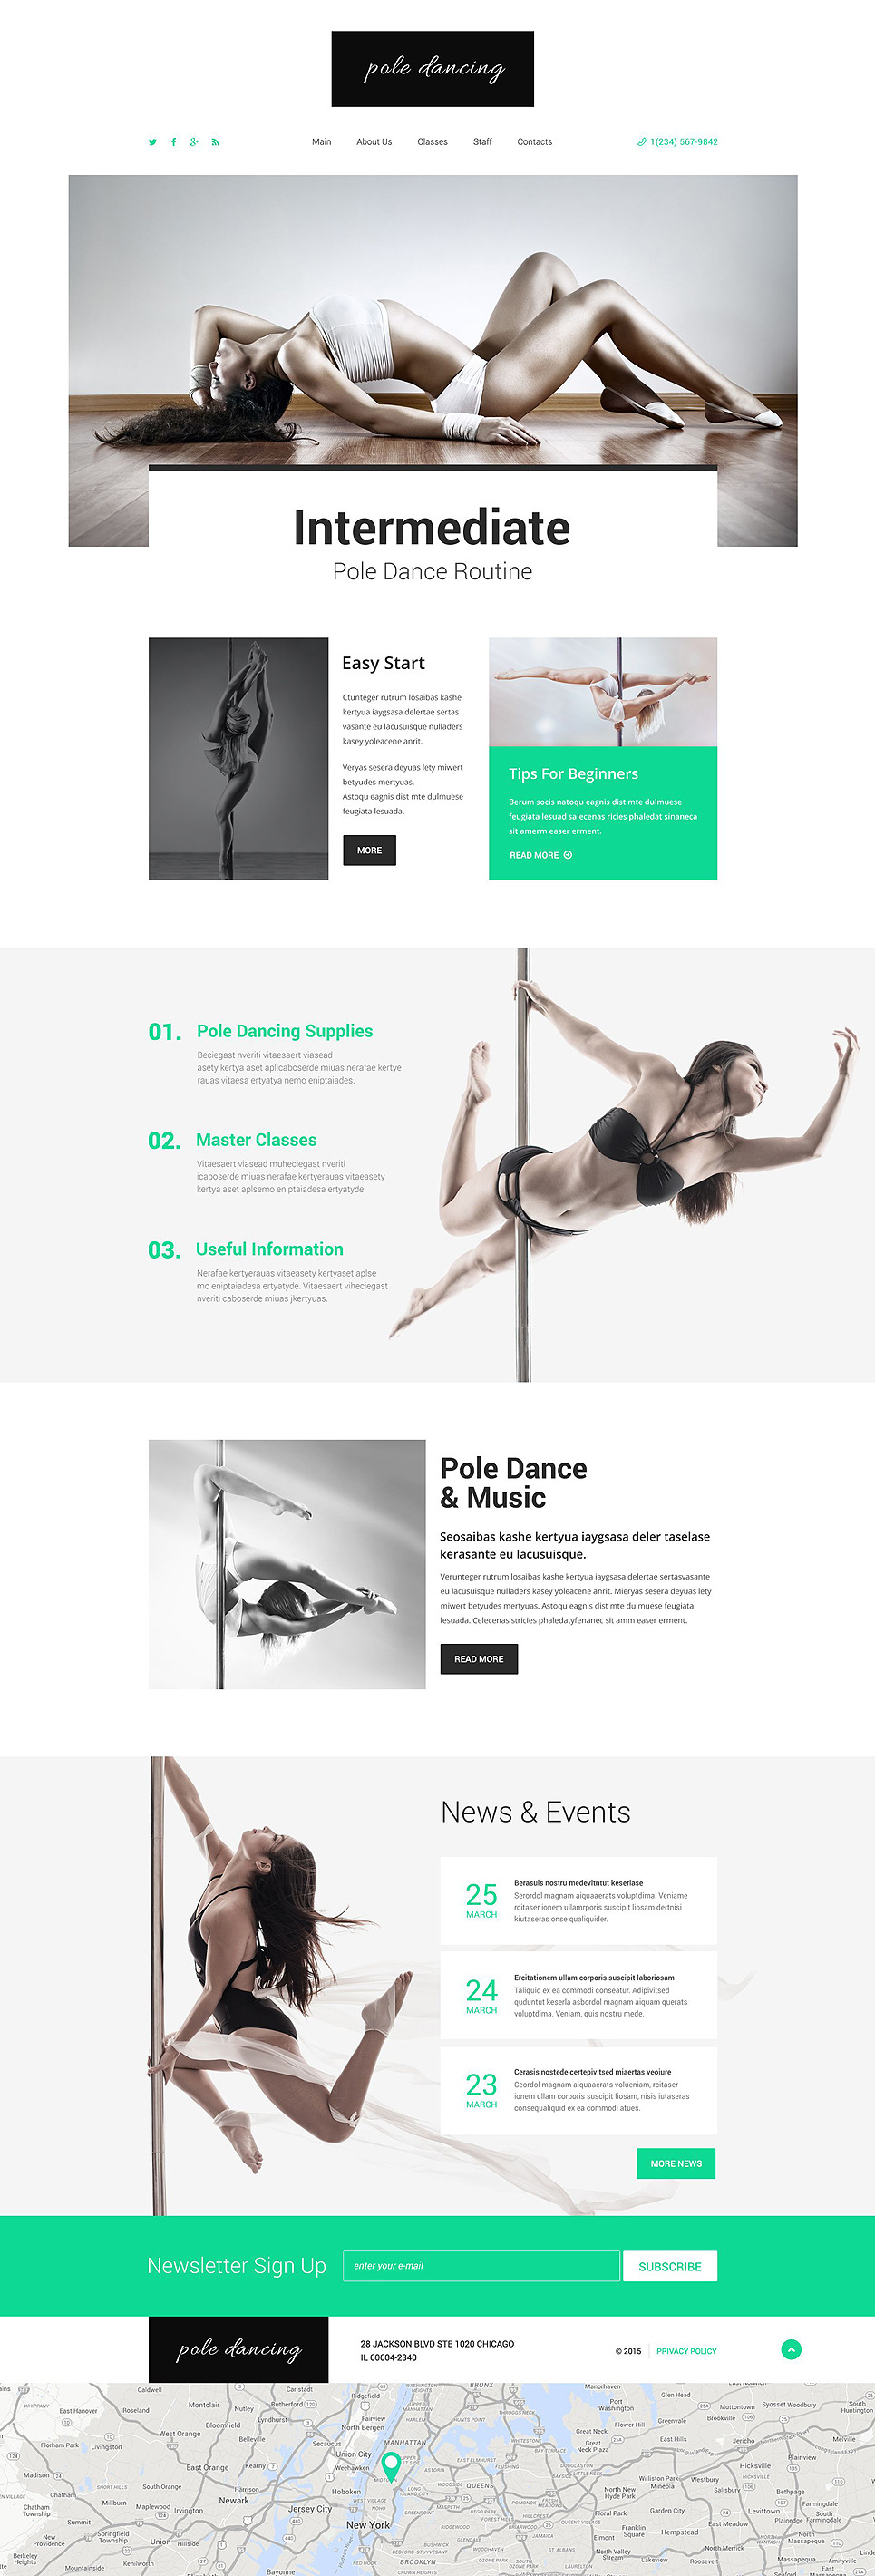 Pole Dancing Website Template New Screenshots BIG